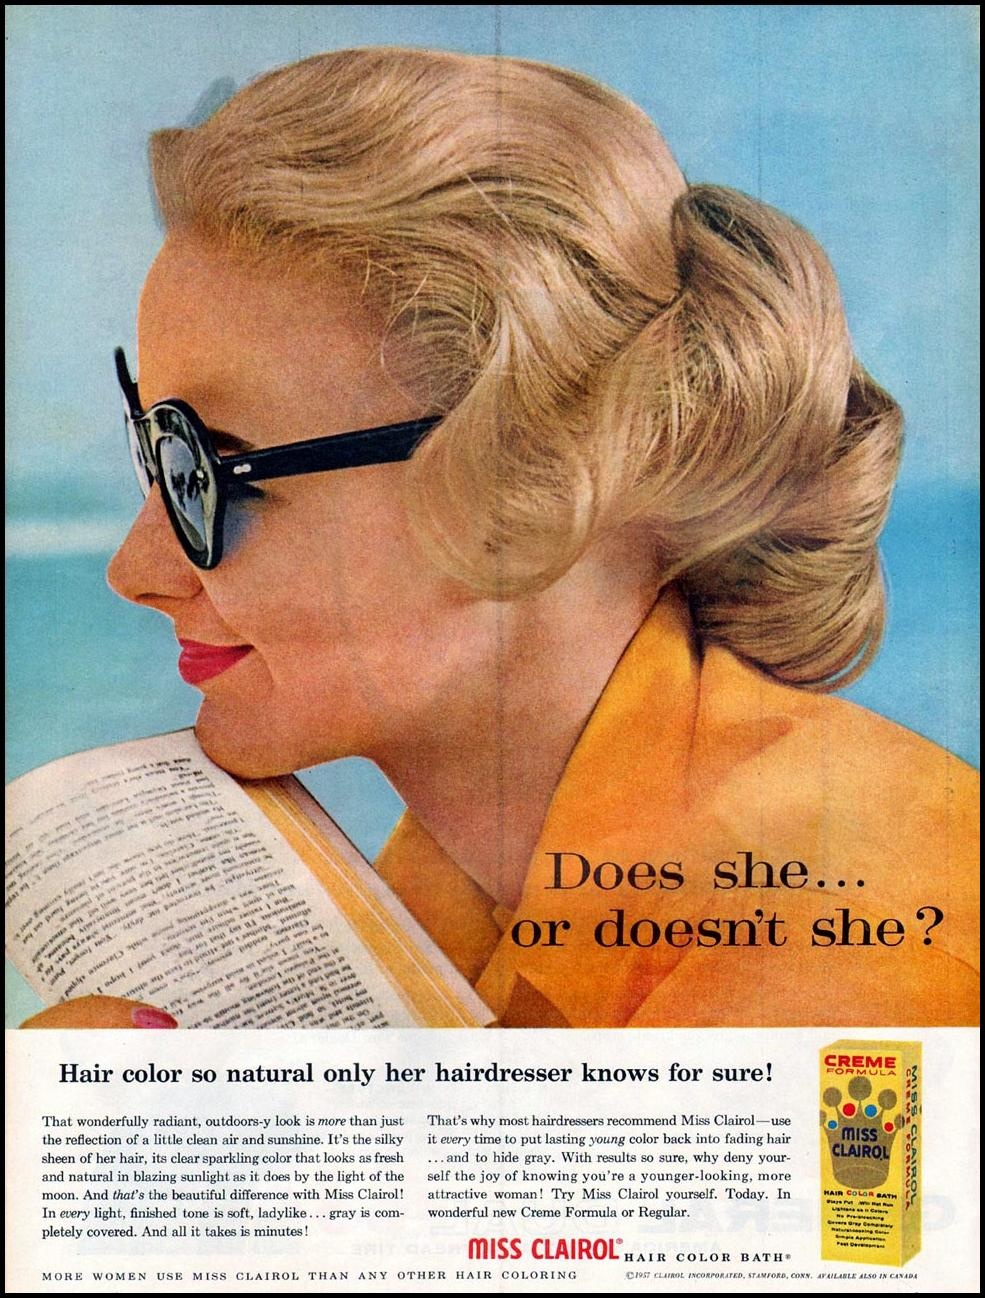 Clairol: Does She or Doesn't She?